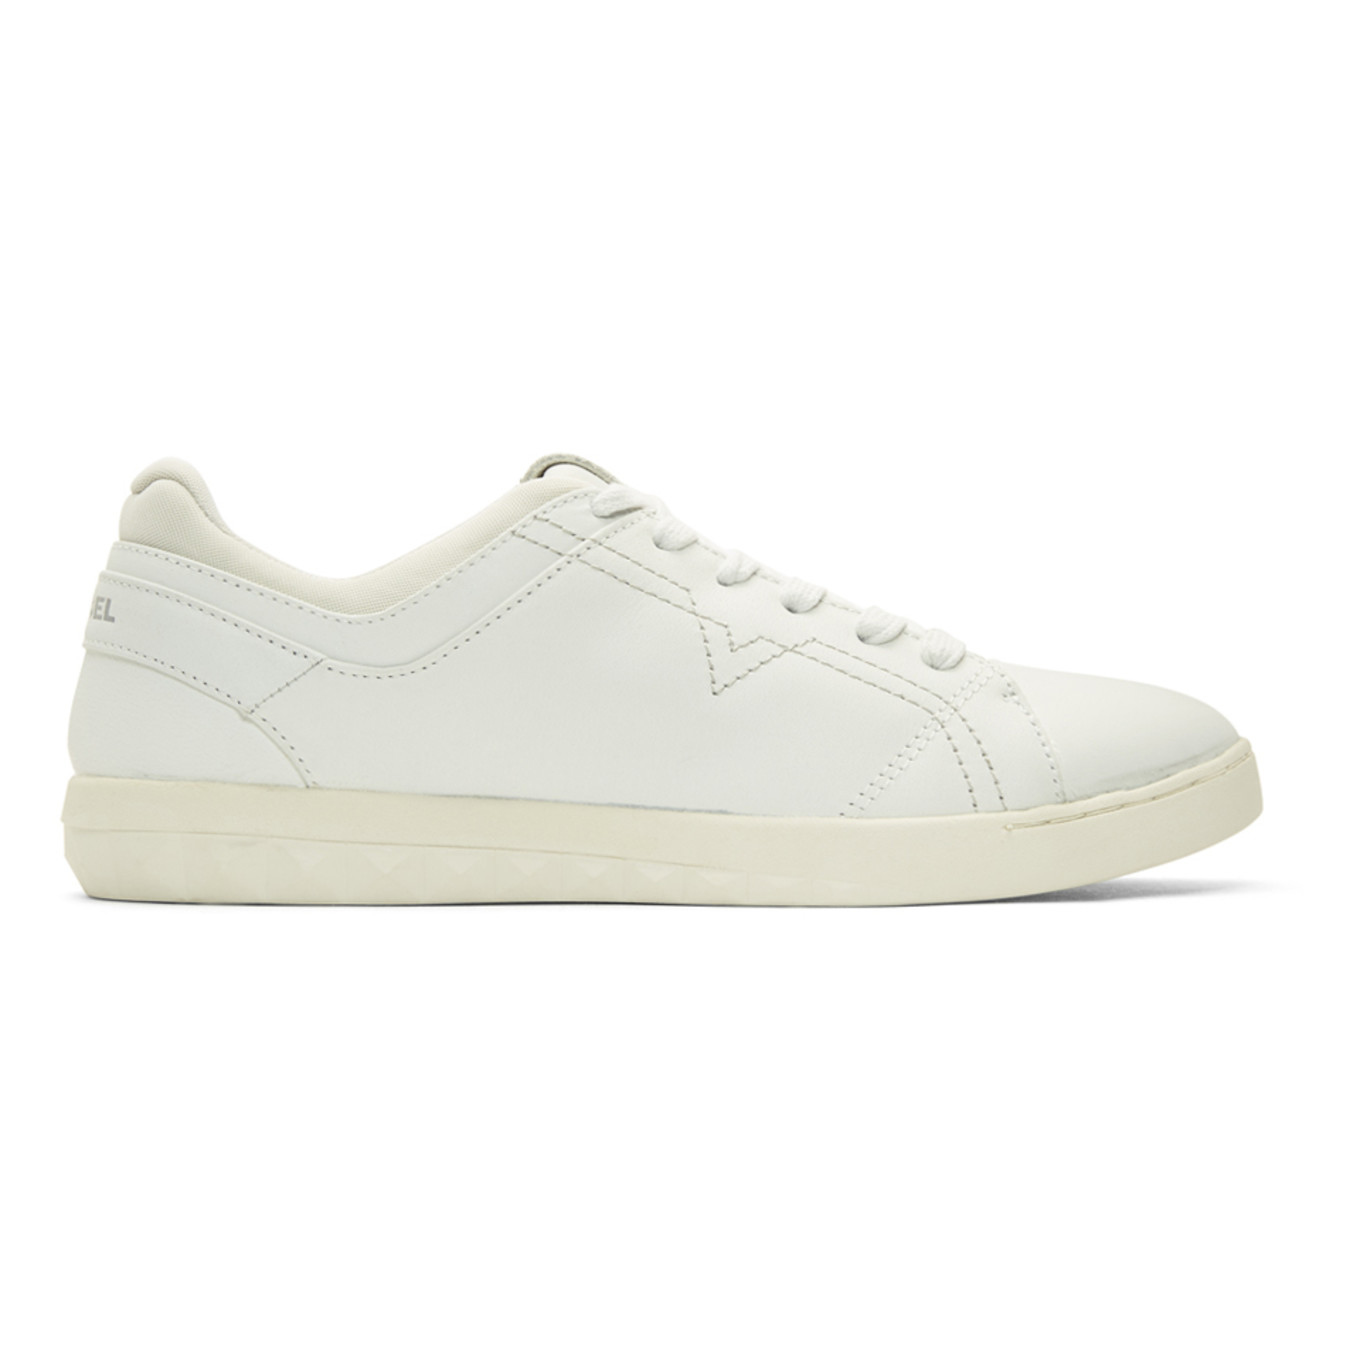 White S Studdzy Lace Sneakers by Diesel